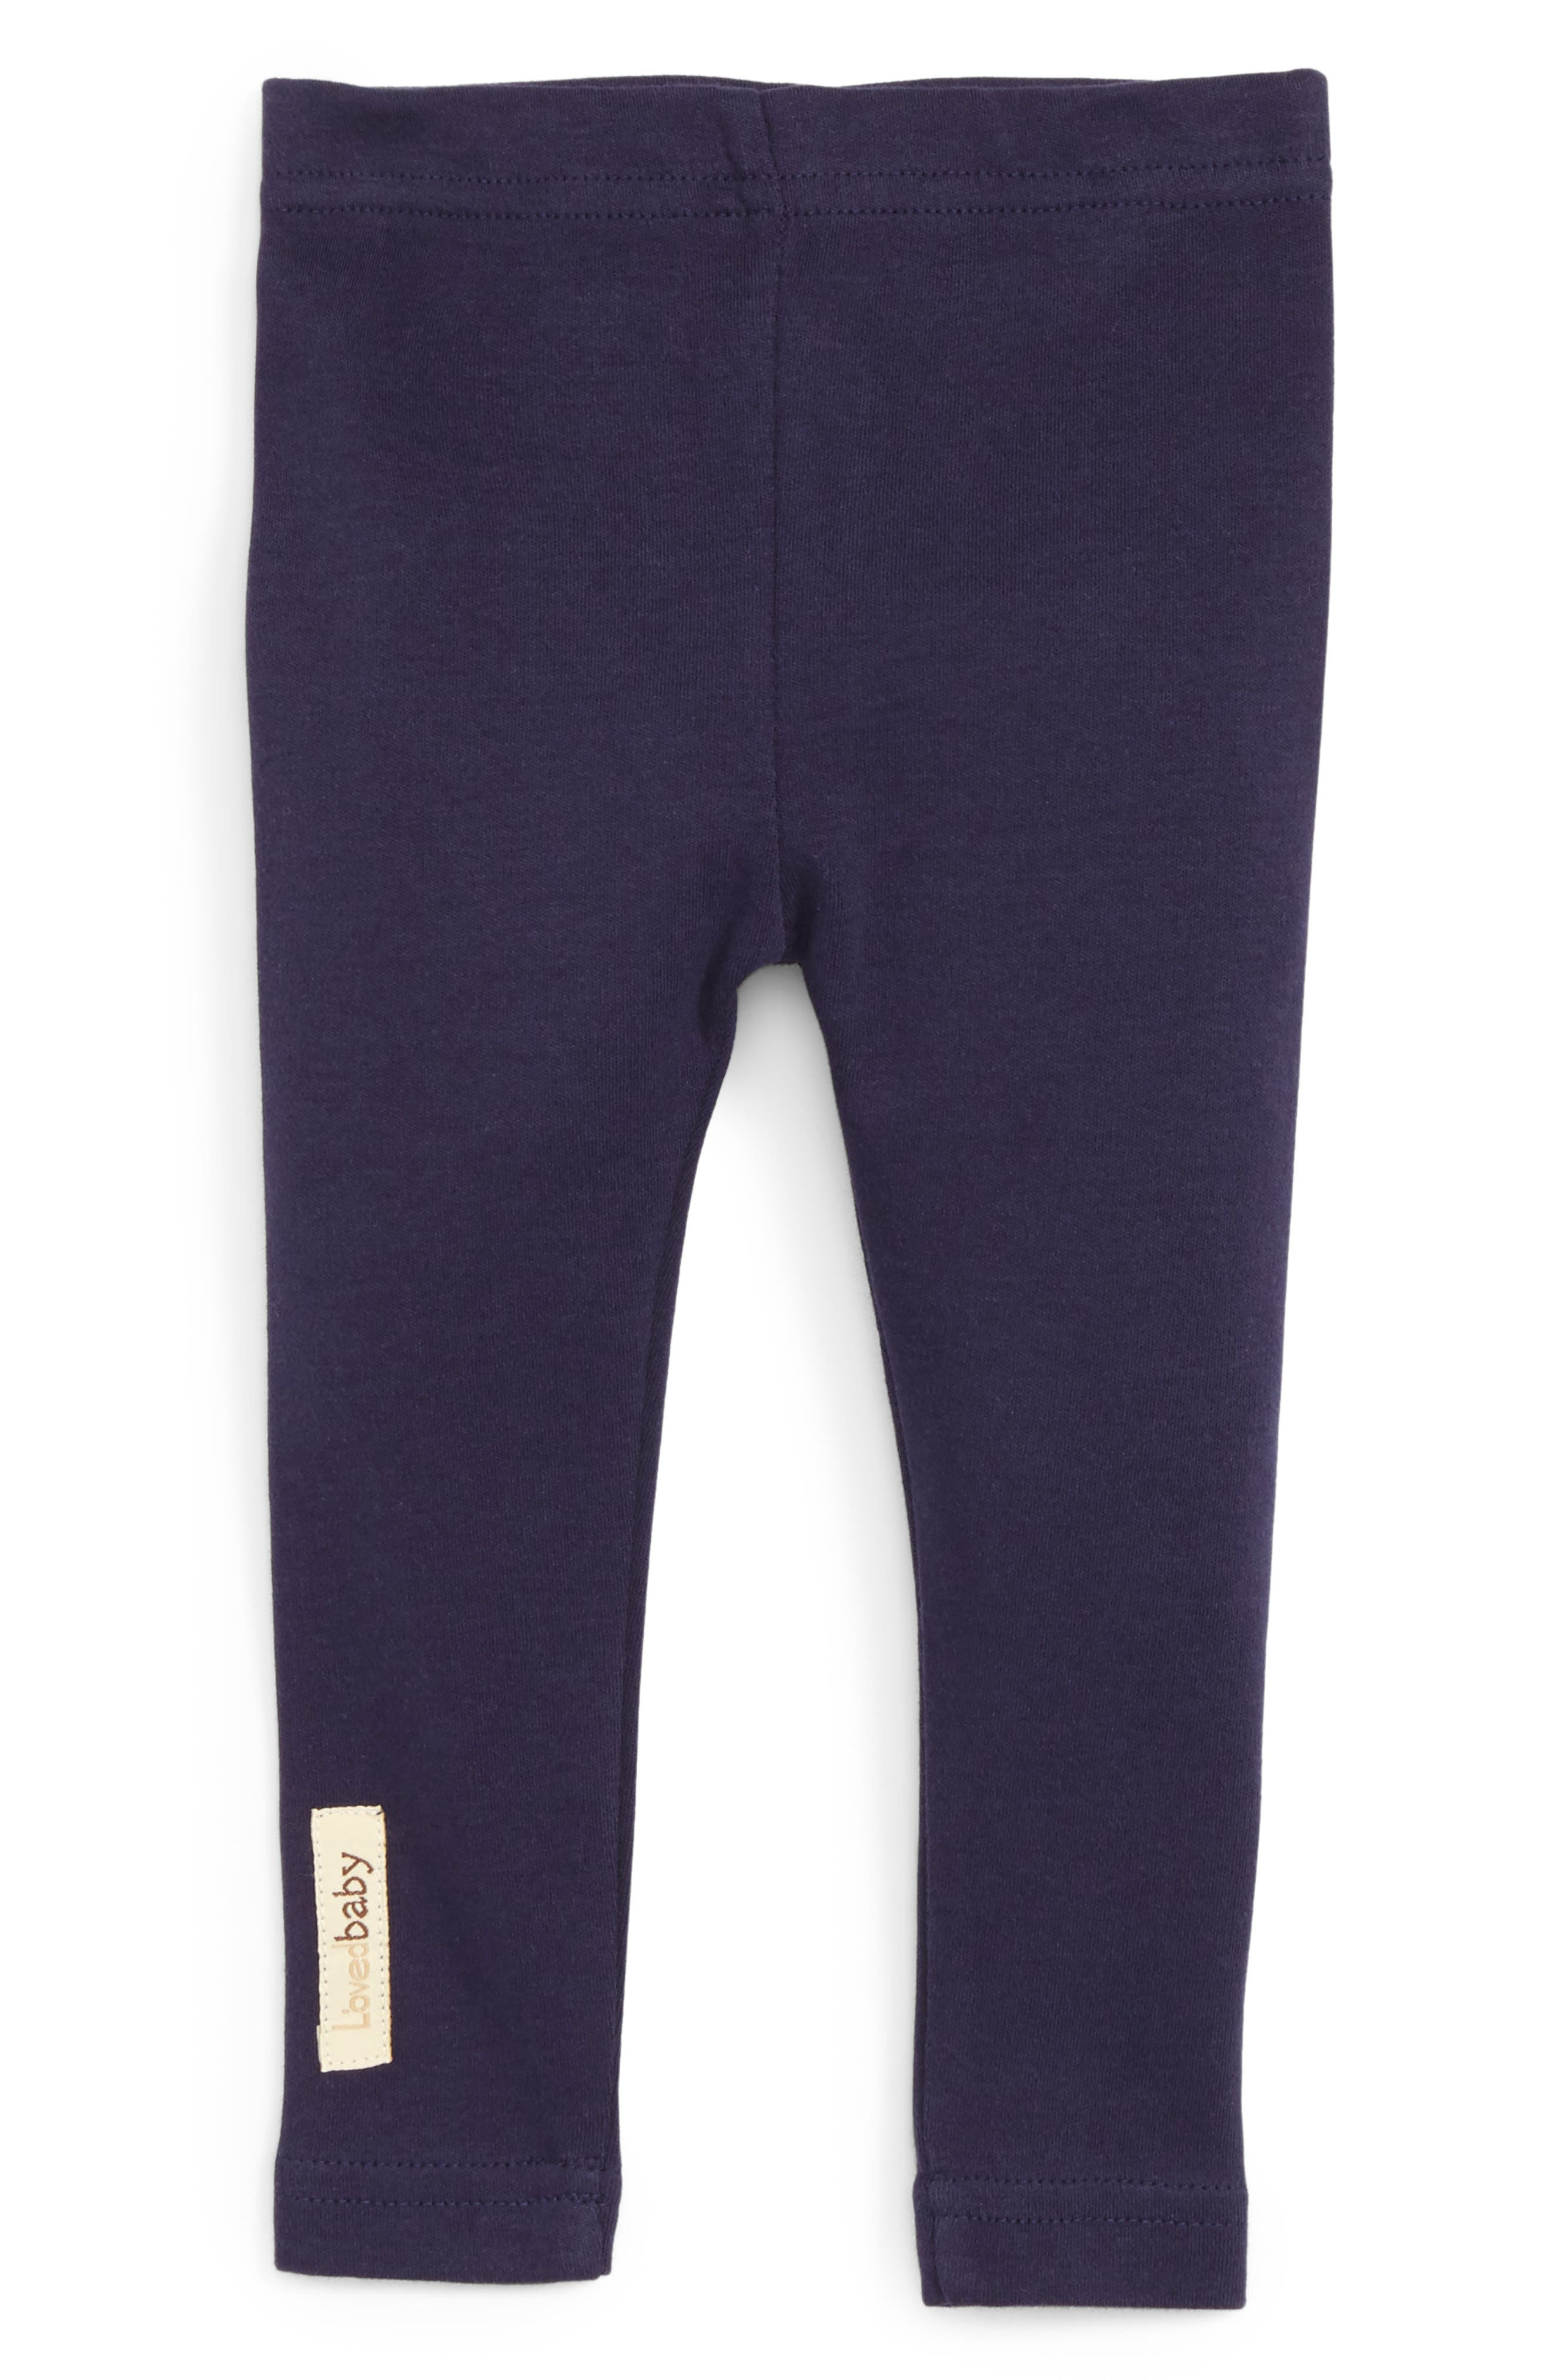 Organic Cotton Pants,                             Main thumbnail 1, color,                             Navy